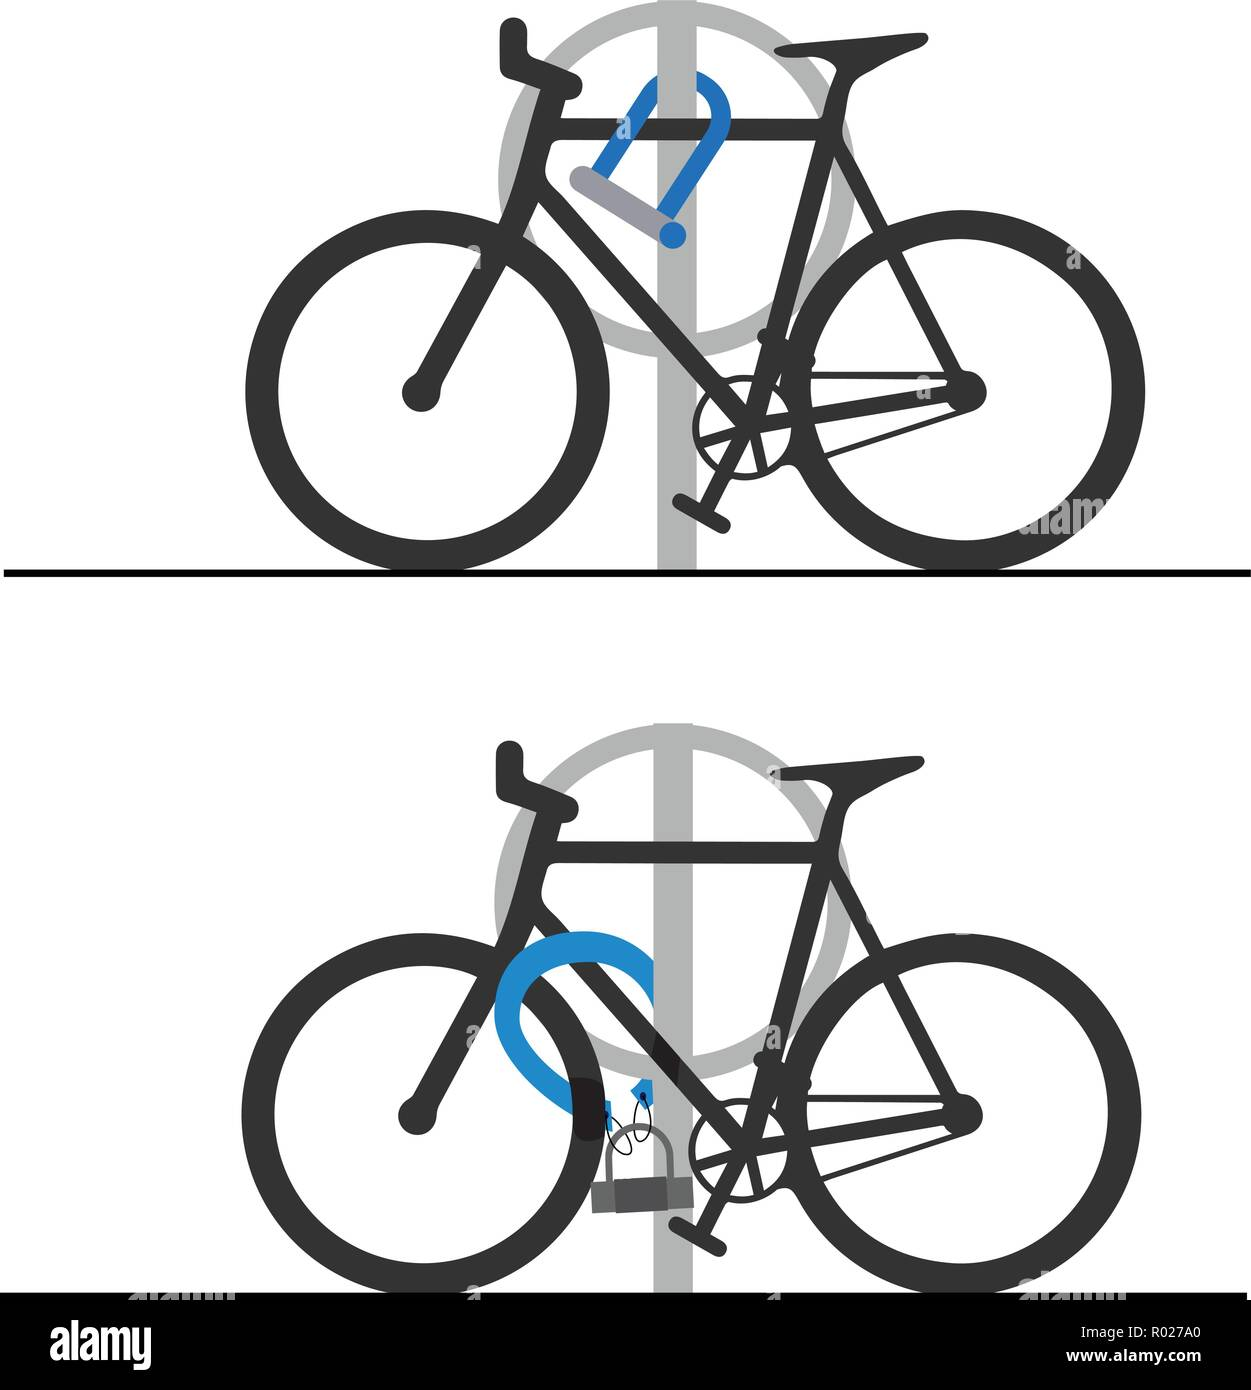 Two anti theft locks for bicycle - Stock Vector